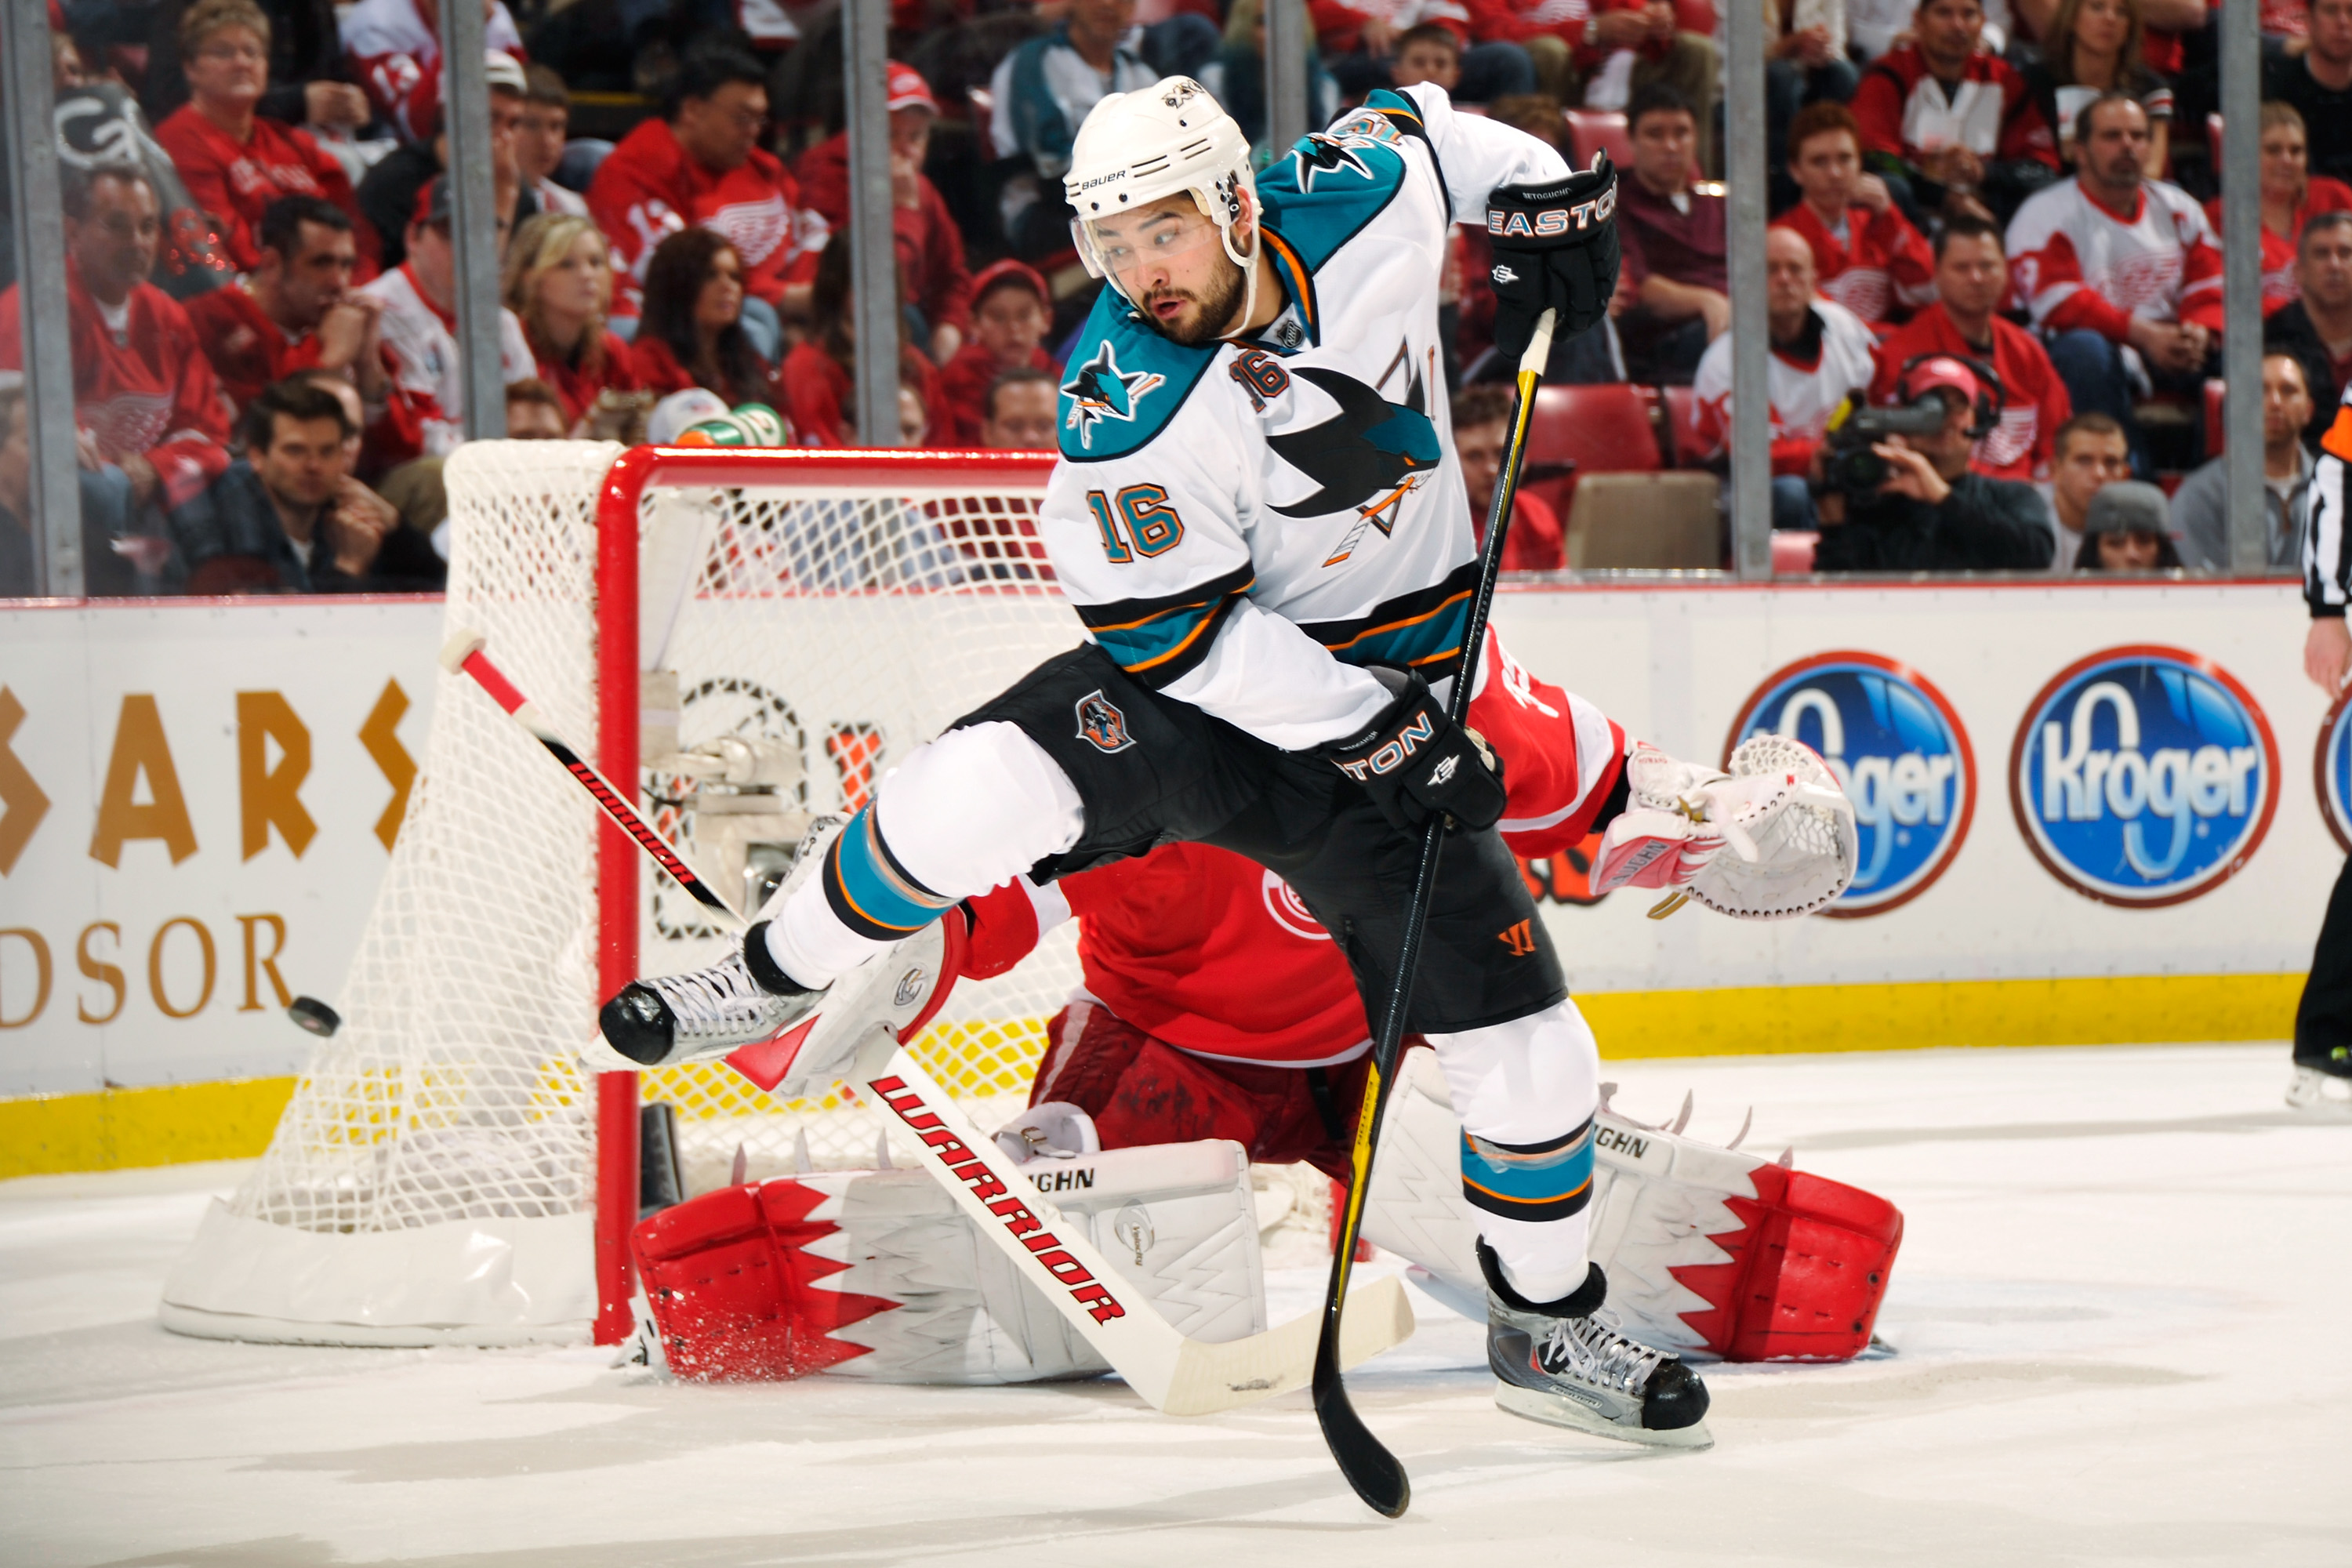 Devin Setoguchi of the San Jose Sharks attempts to screen goaltender Jimmy Howard of the Detroit Red Wings in the first period in Game 3 of the Western Conference Semifinals during the 2011 NHL Stanley Cup Playoffs on May 4, 2011